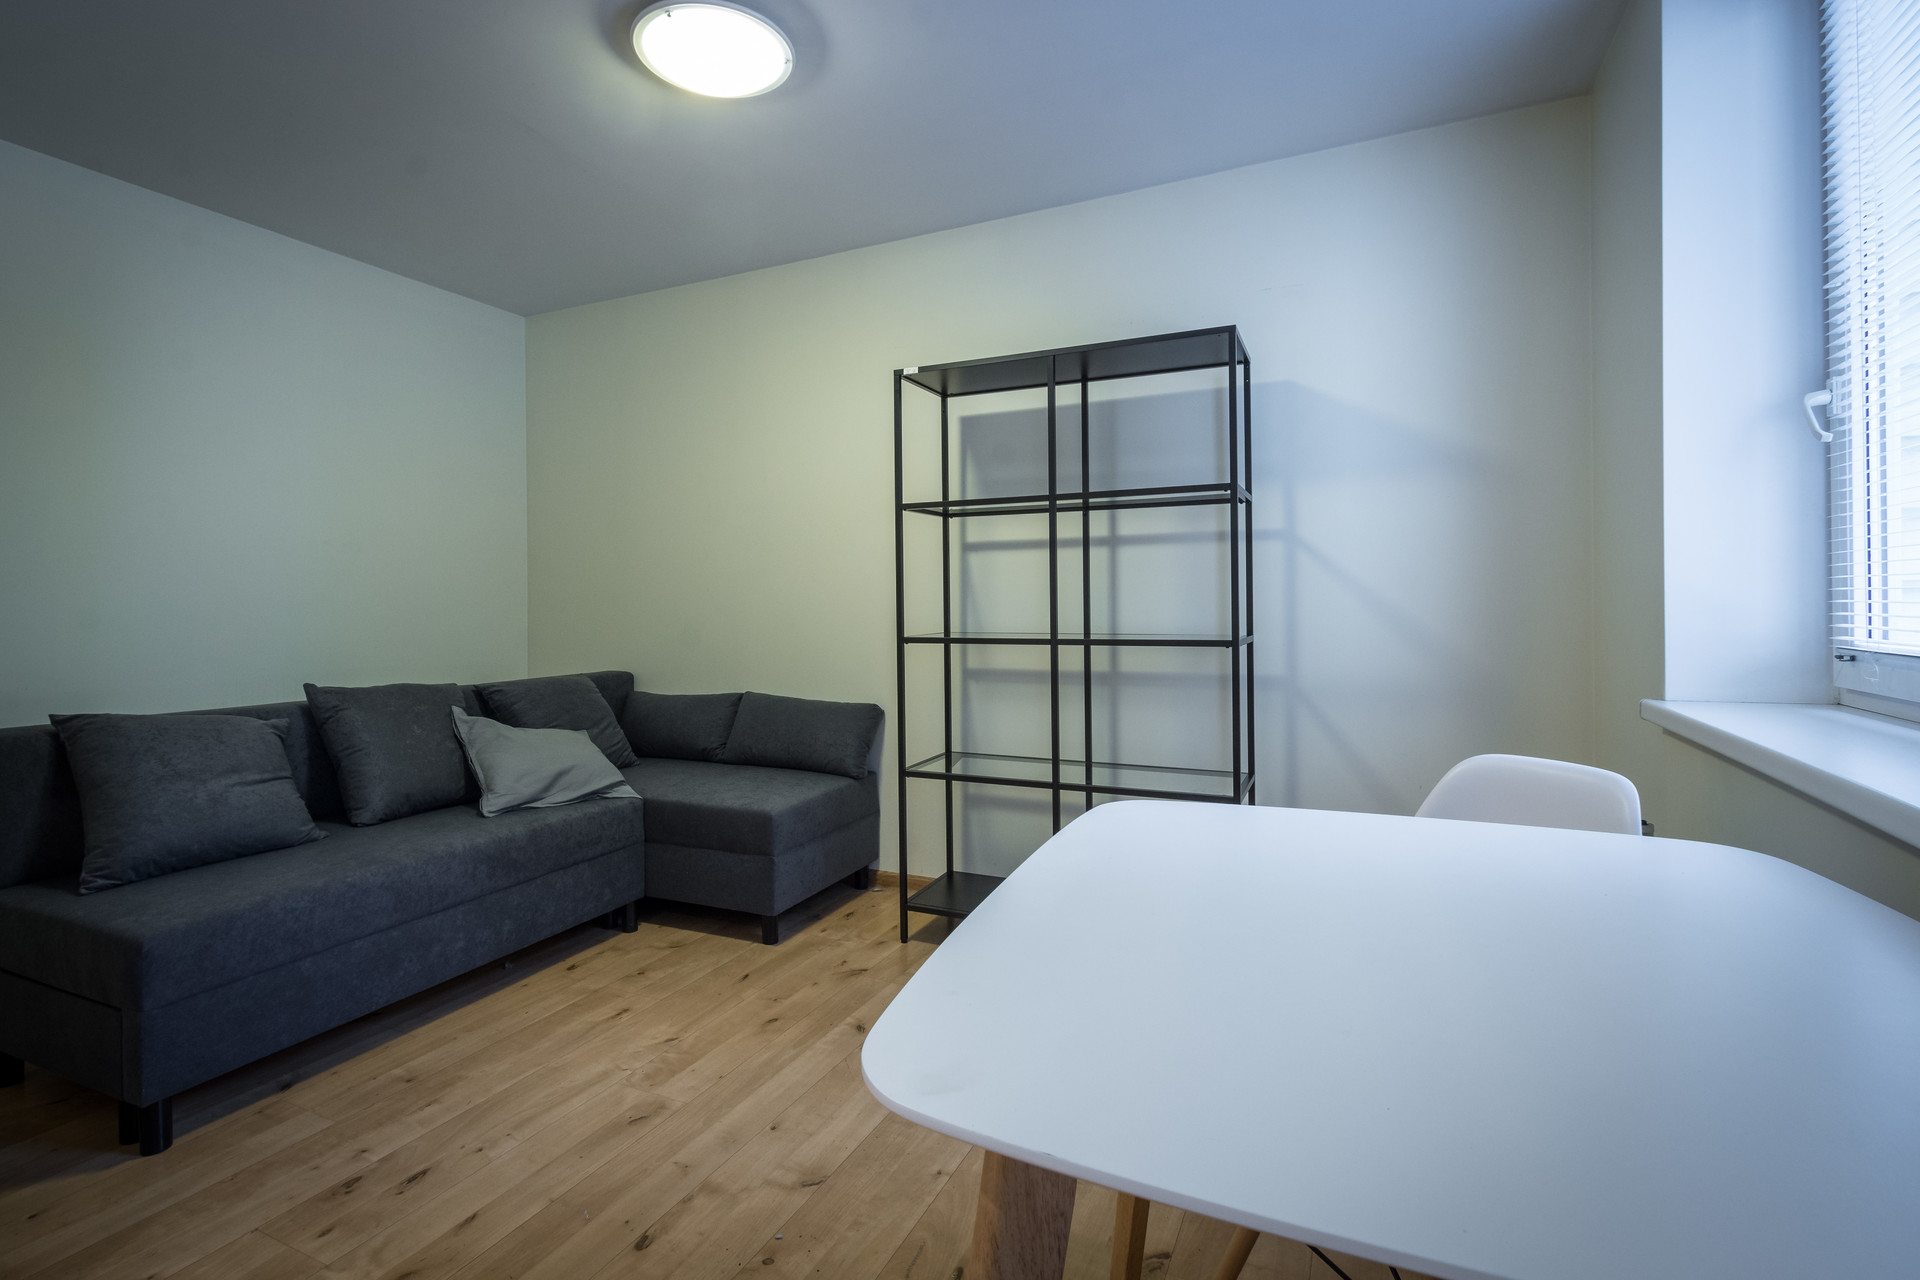 Fully furnished and equipped cozy studio flat for rent.